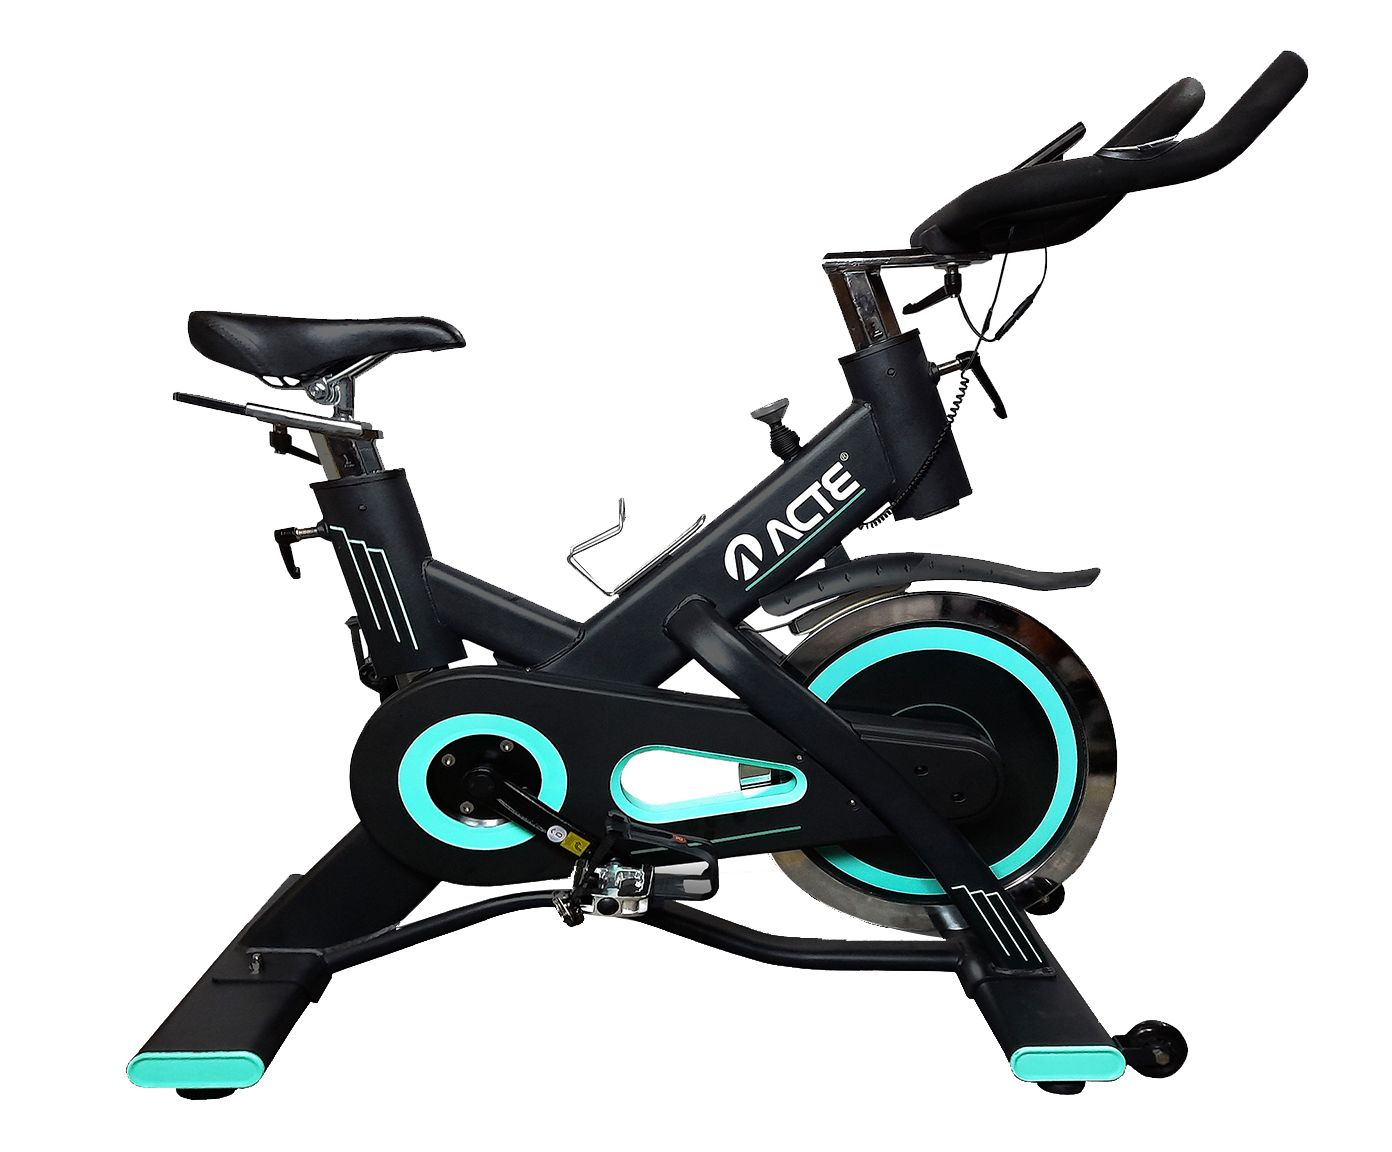 Spinning Bike Pro 20.0 - 22,5X86X114,5cm   Westwing.com.br